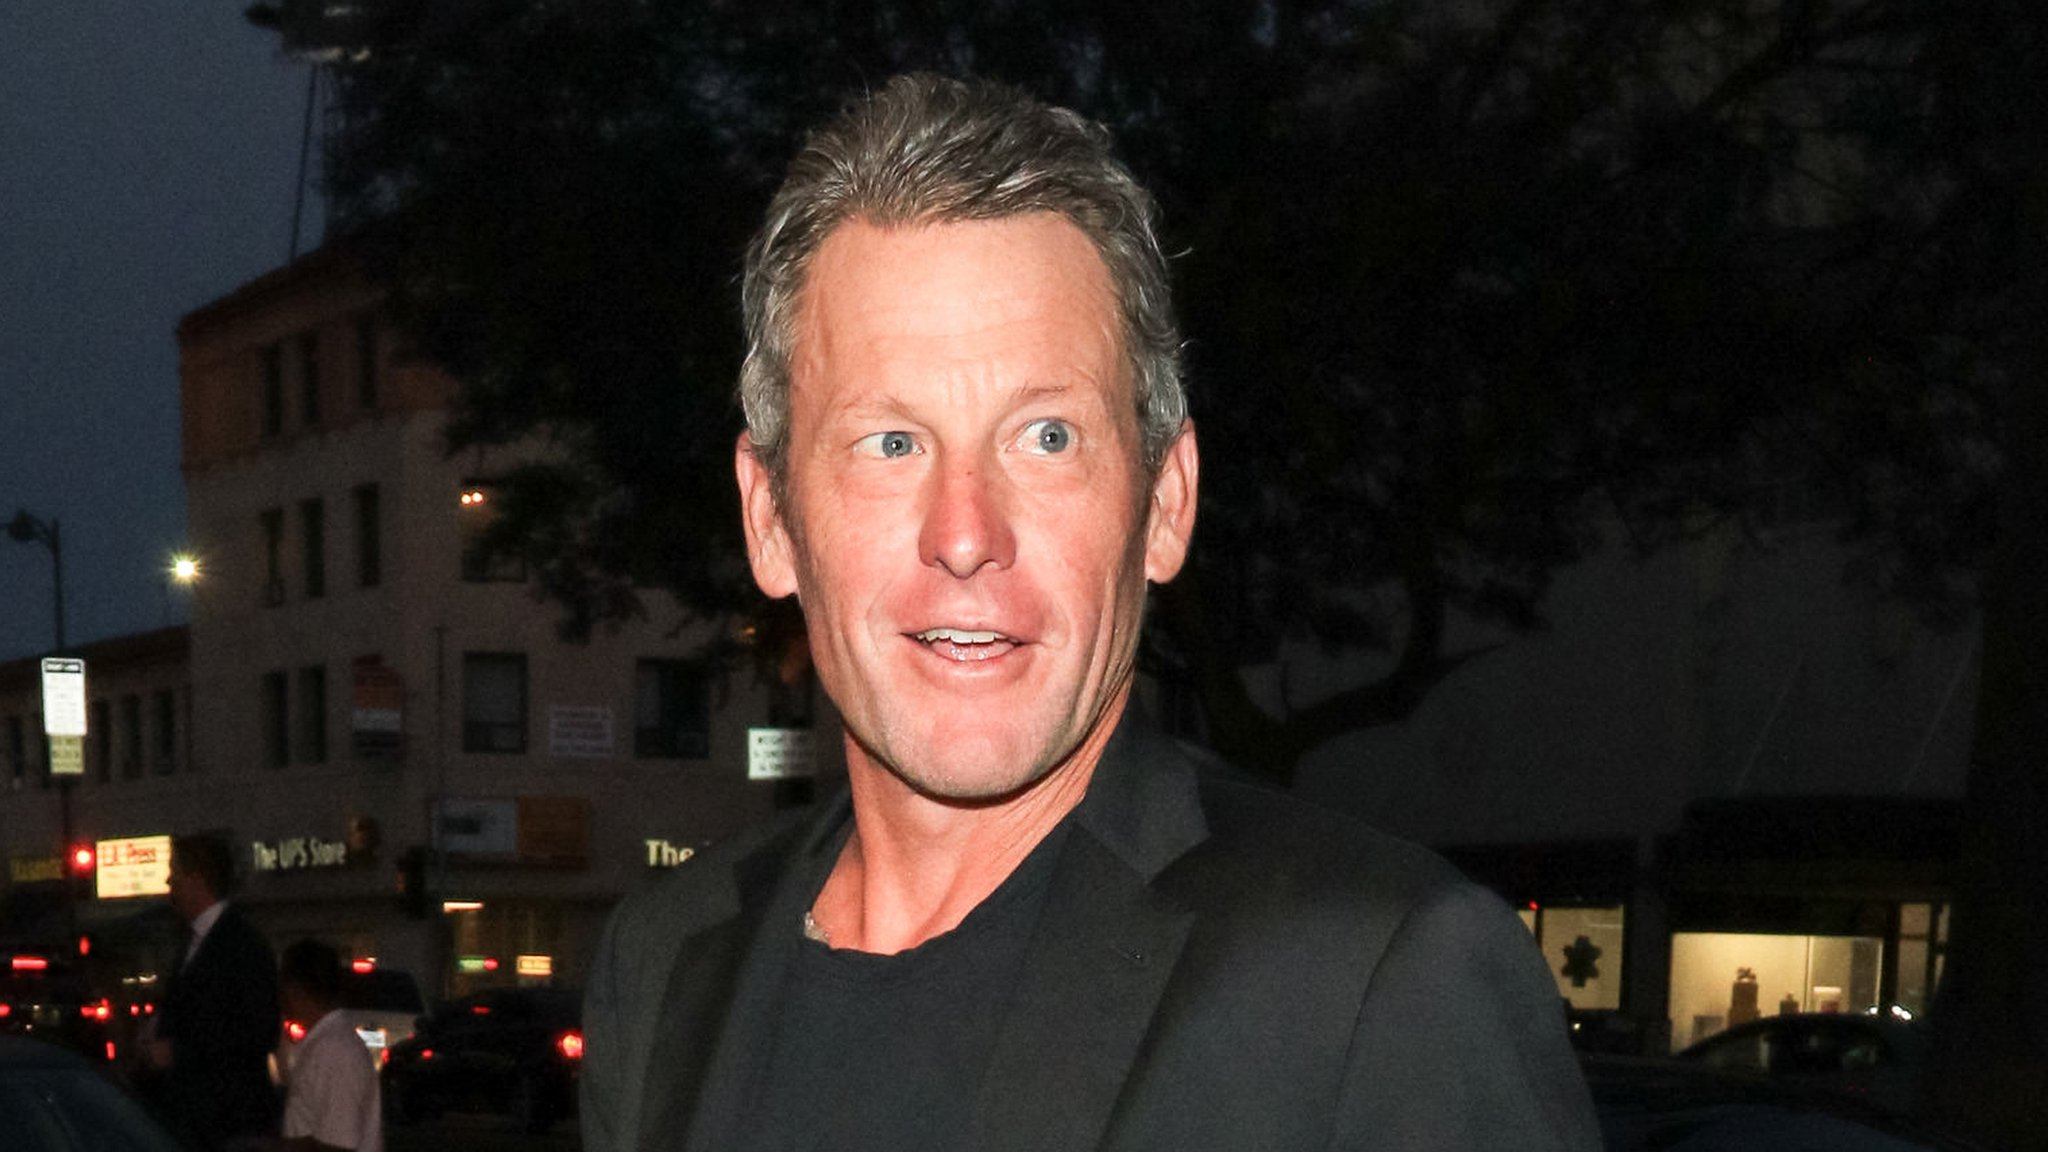 Armstrong says returns from Uber investment 'saved' his family